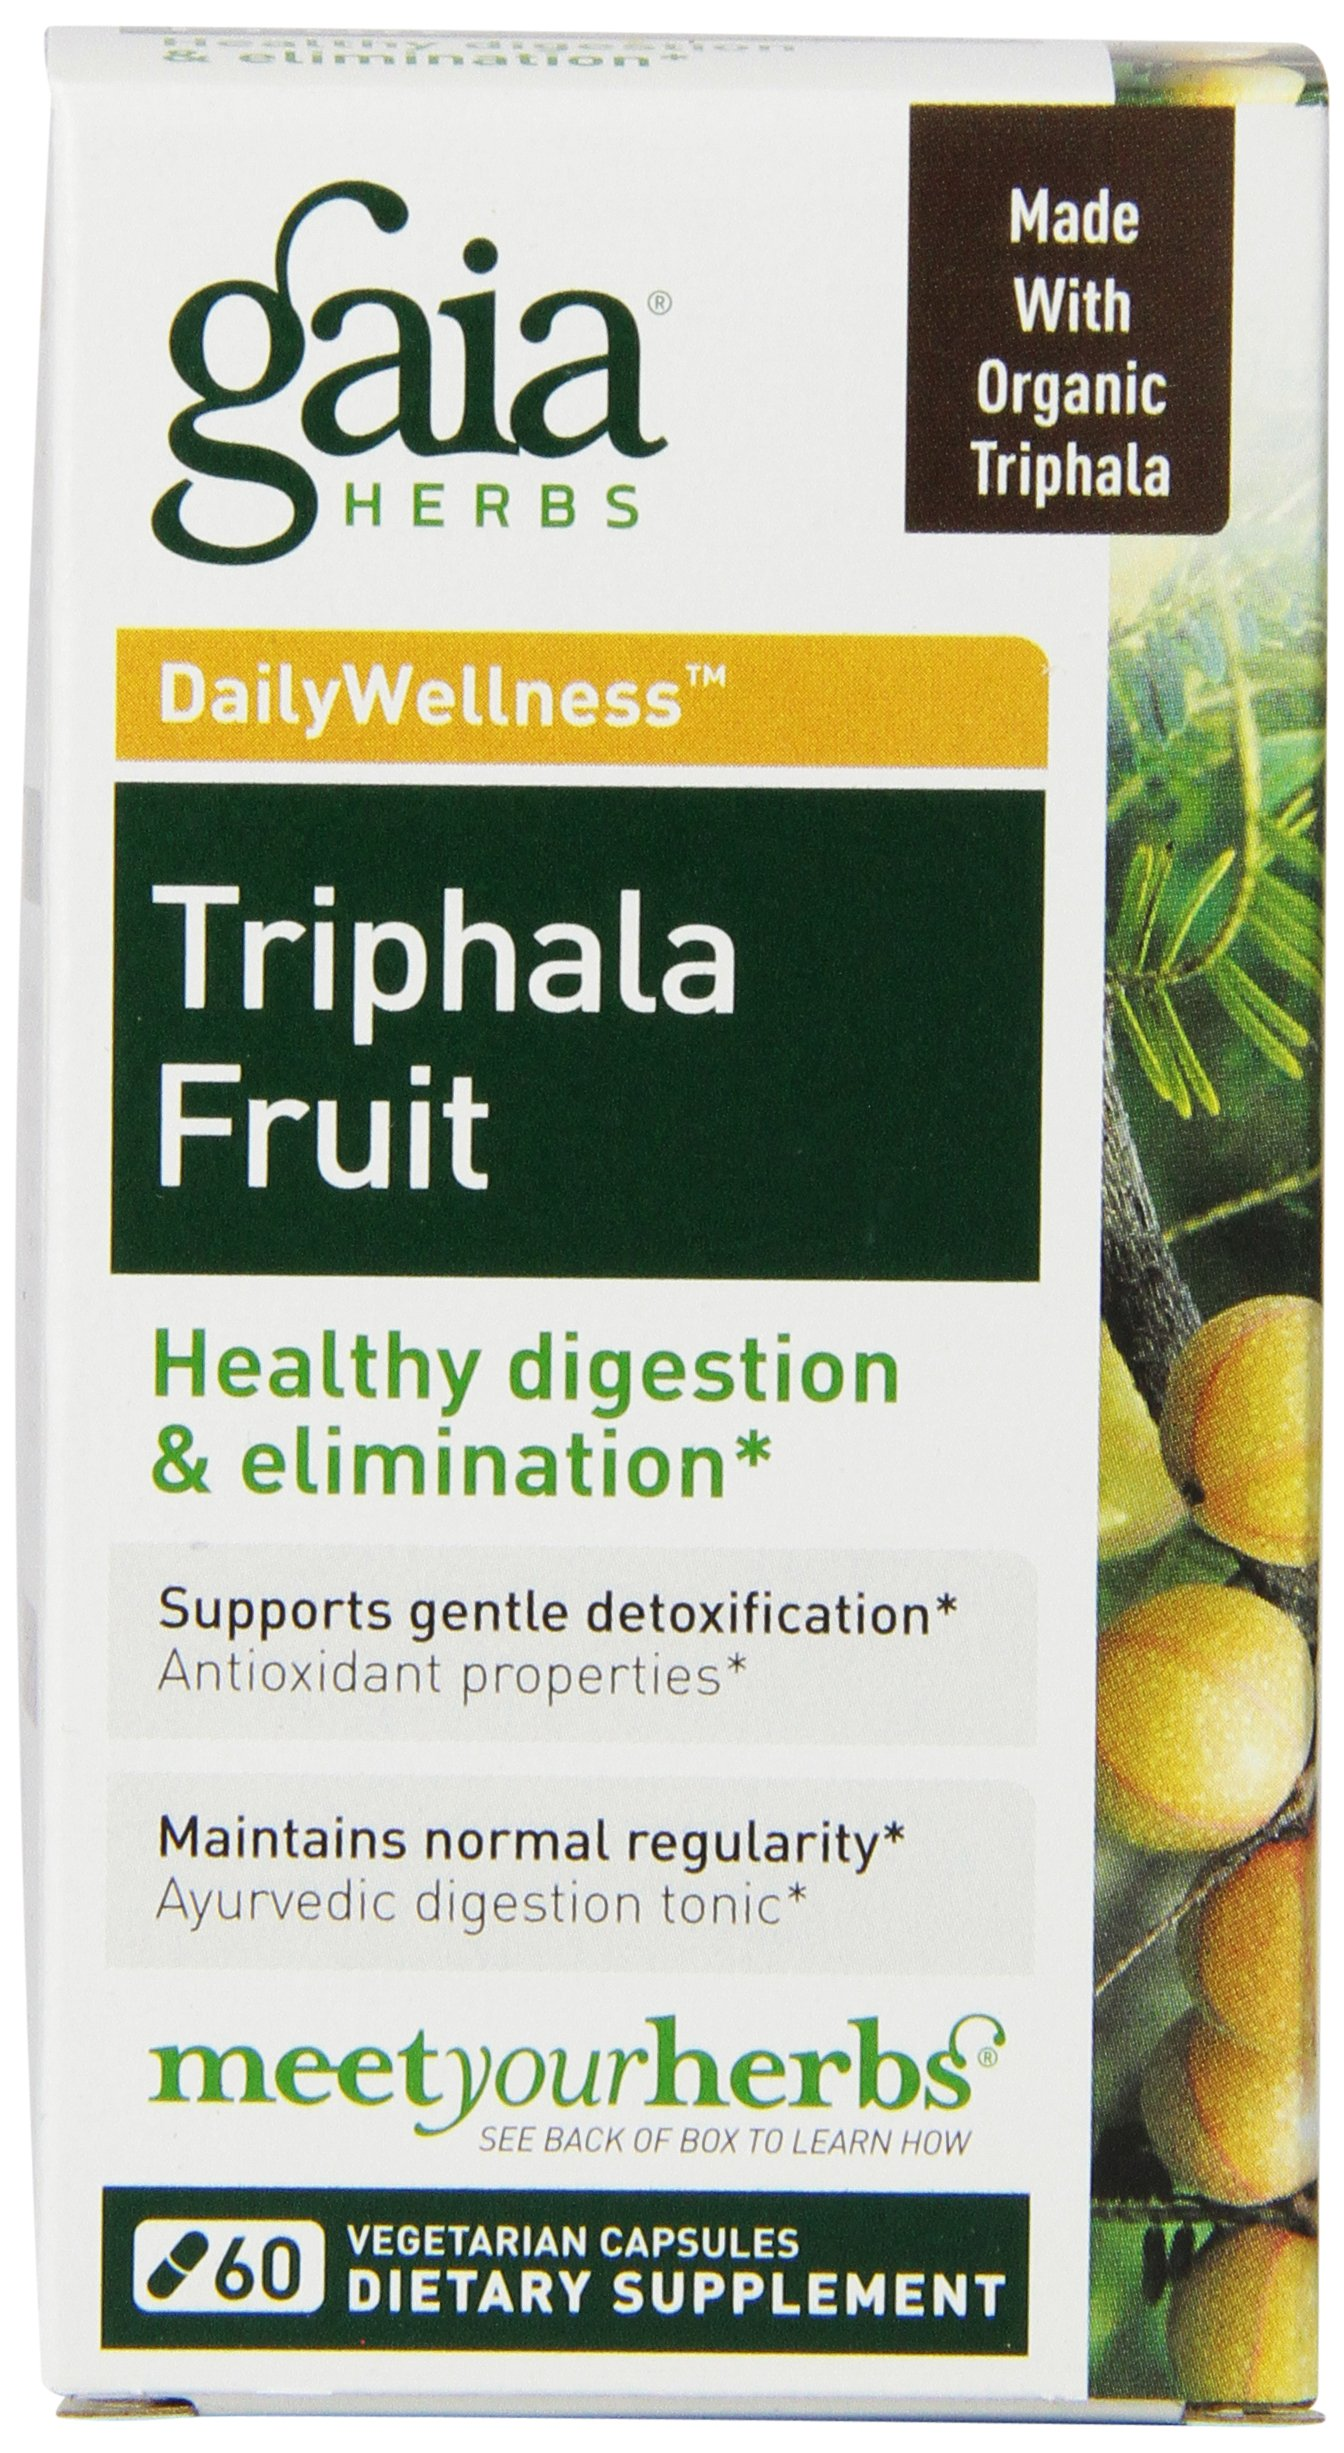 Gaia Herbs Triphala Fruit Vegan Liquid Capsules, 60 Count - Gentle Daily Detox and Colon Cleanse, Organic Ayurvedic Formula for Healthy Digestion, Circulation and Liver Support